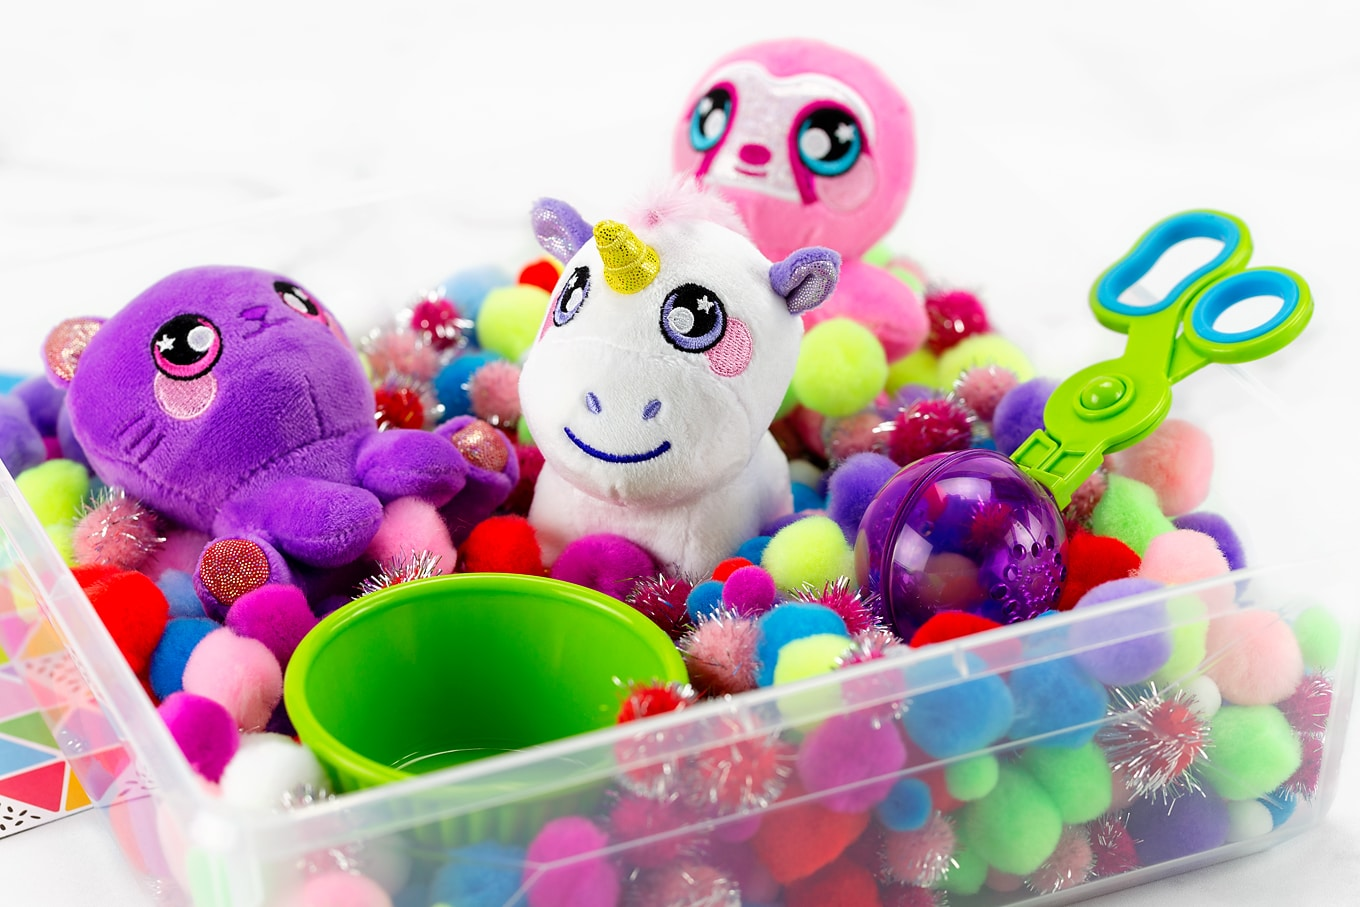 Squeezamals in a Pom Pom Sensory Bin With Cup and Scoopers